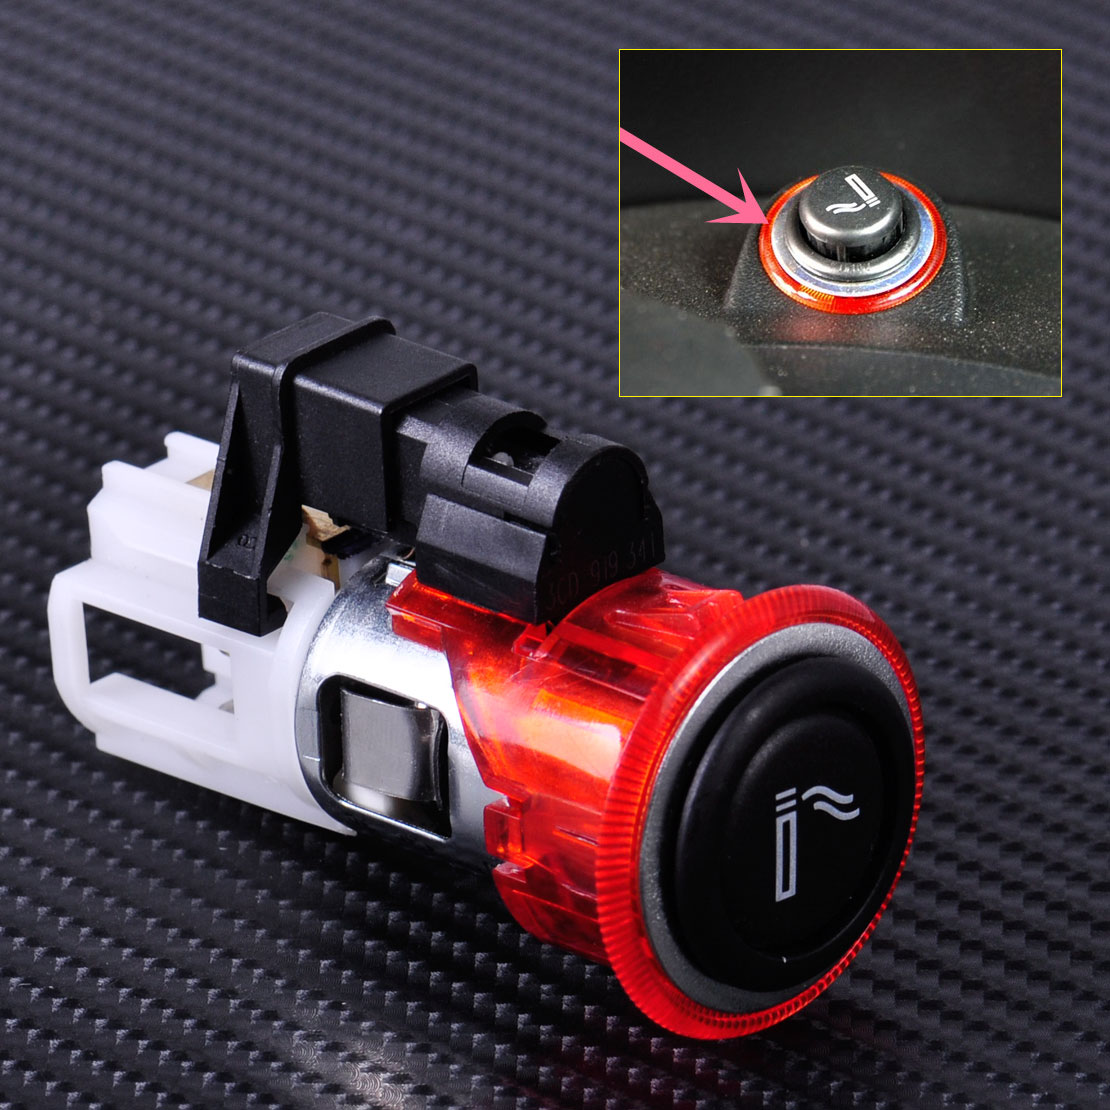 Costlyseed Car Cigarette Lighter Assembly For Seat Leon Vw Polo Fuse Box Citall 1j0 919 307 9b9 Fit Beetle Golf Gti Tiguan Jetta